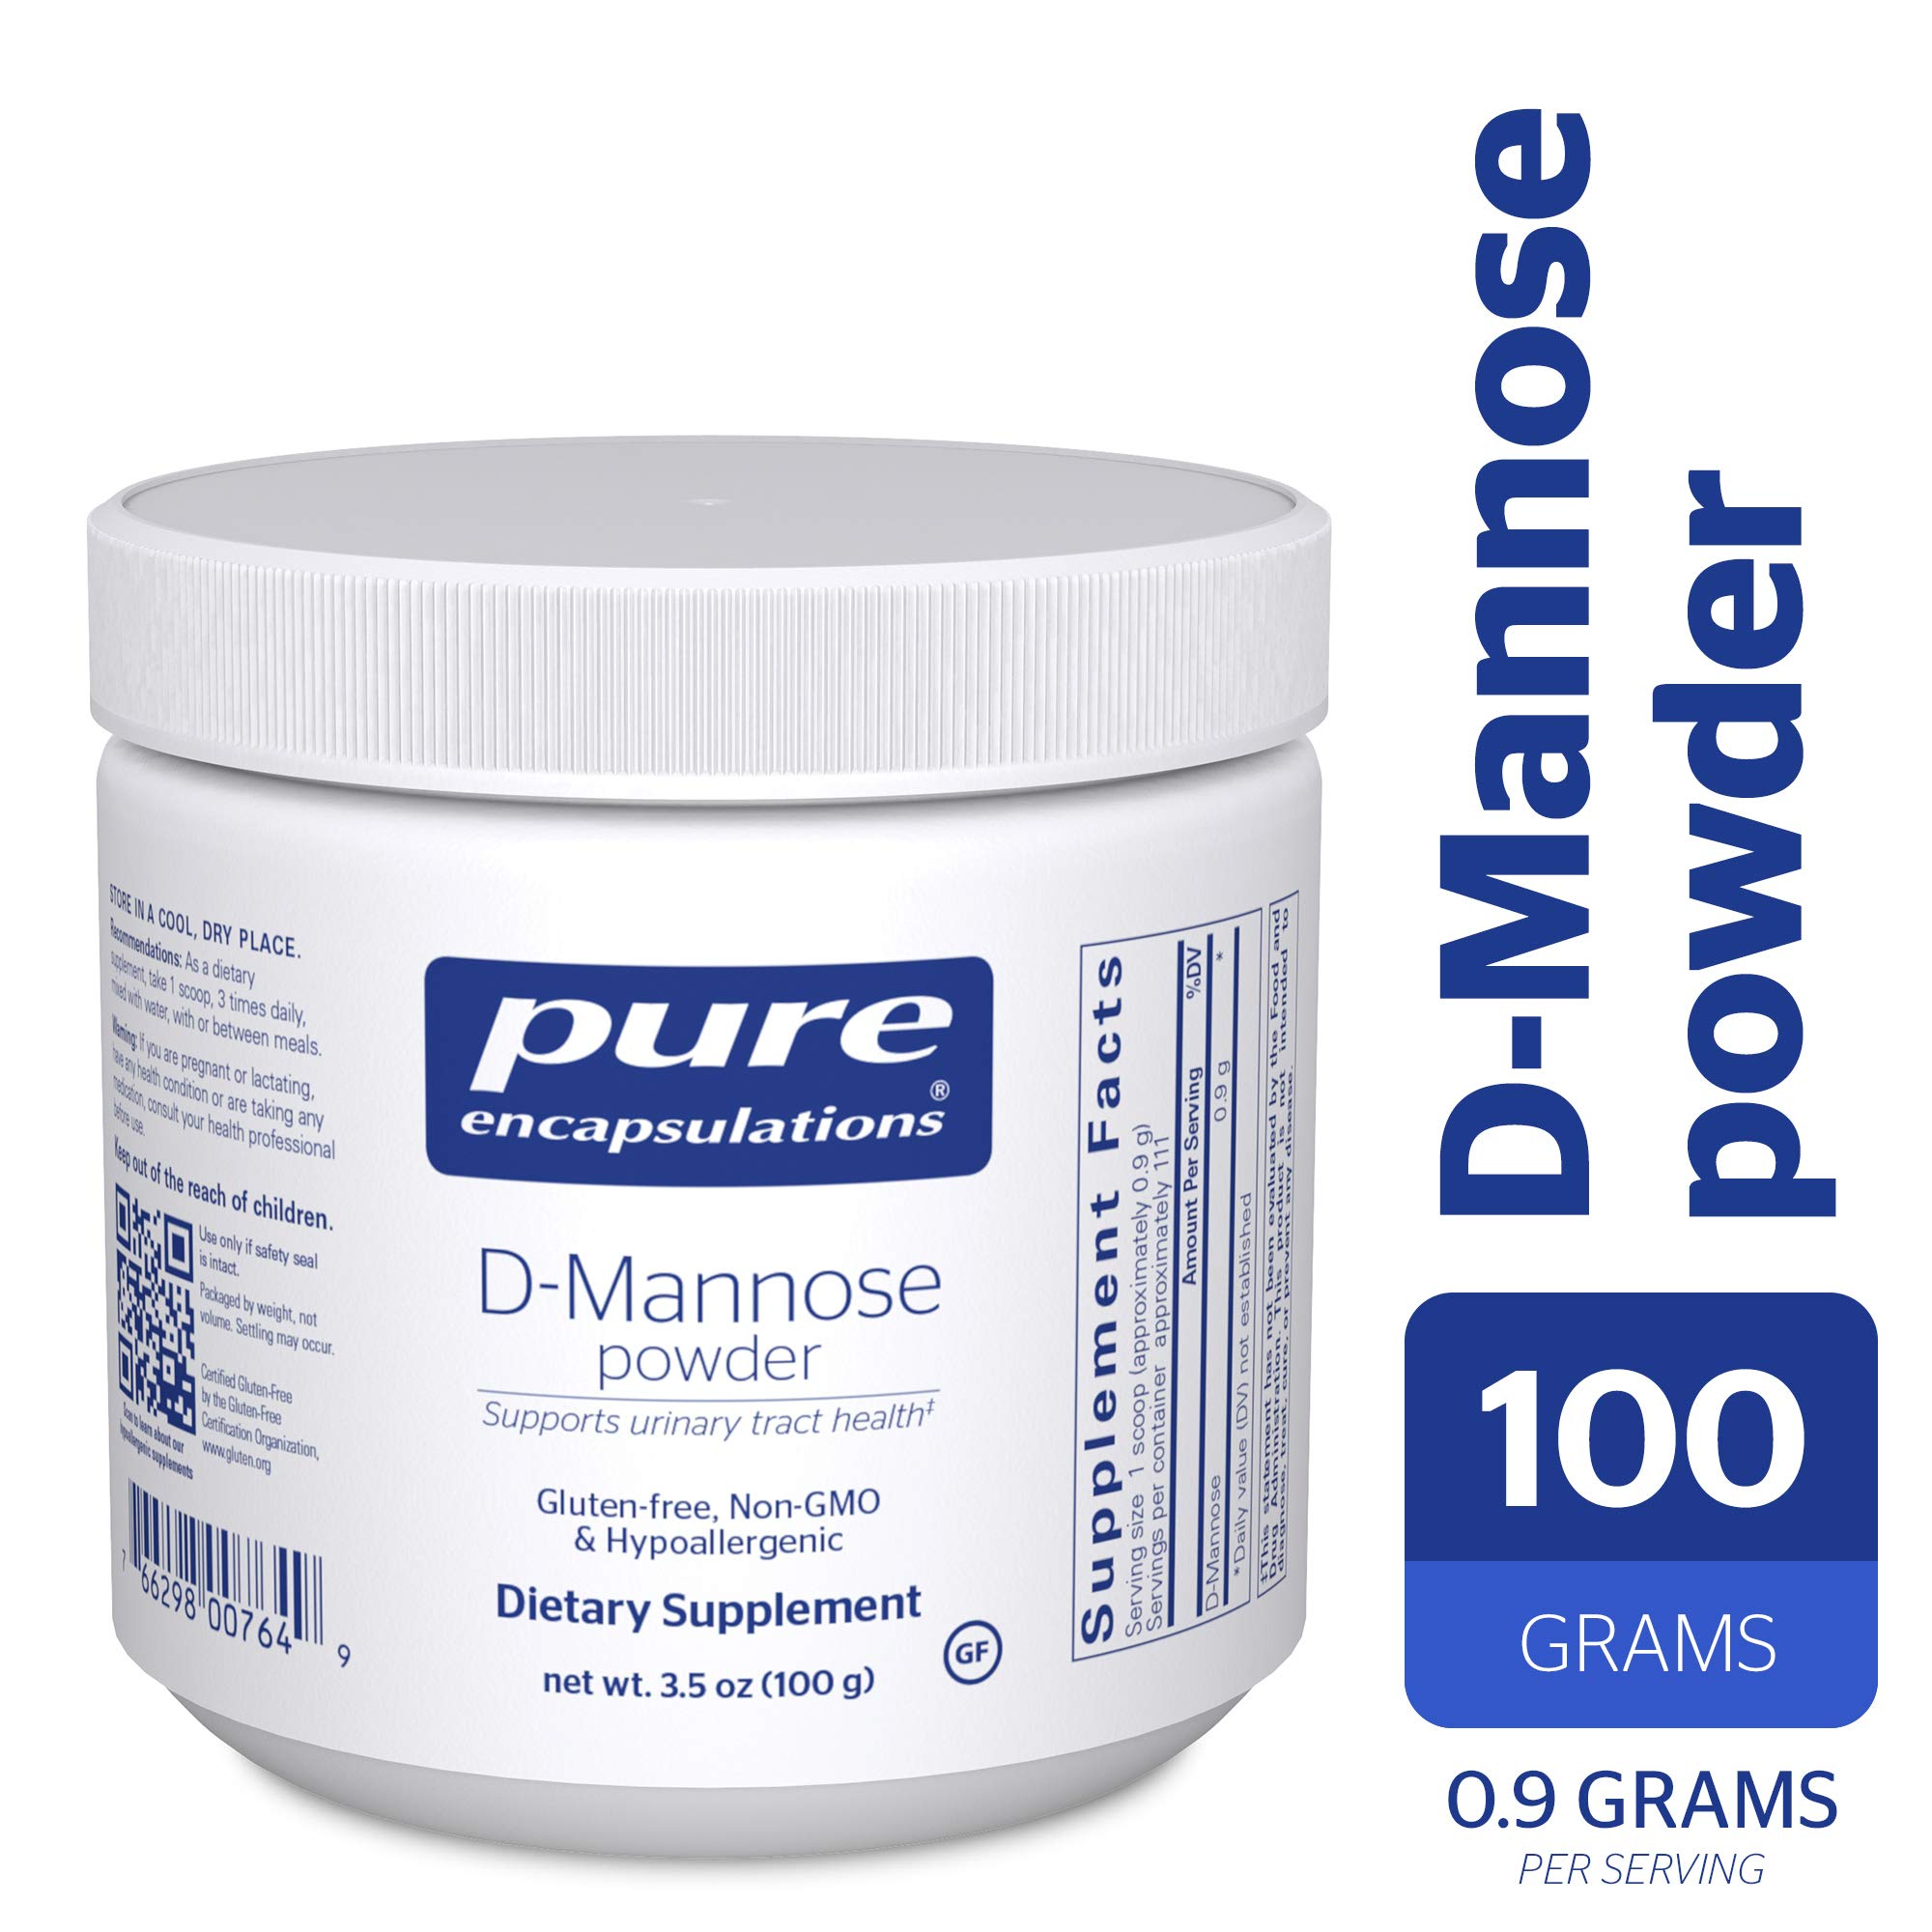 Pure Encapsulations - d-Mannose Powder - Hypoallergenic Supplement for Urinary Tract Support* - 100 Grams by Pure Encapsulations